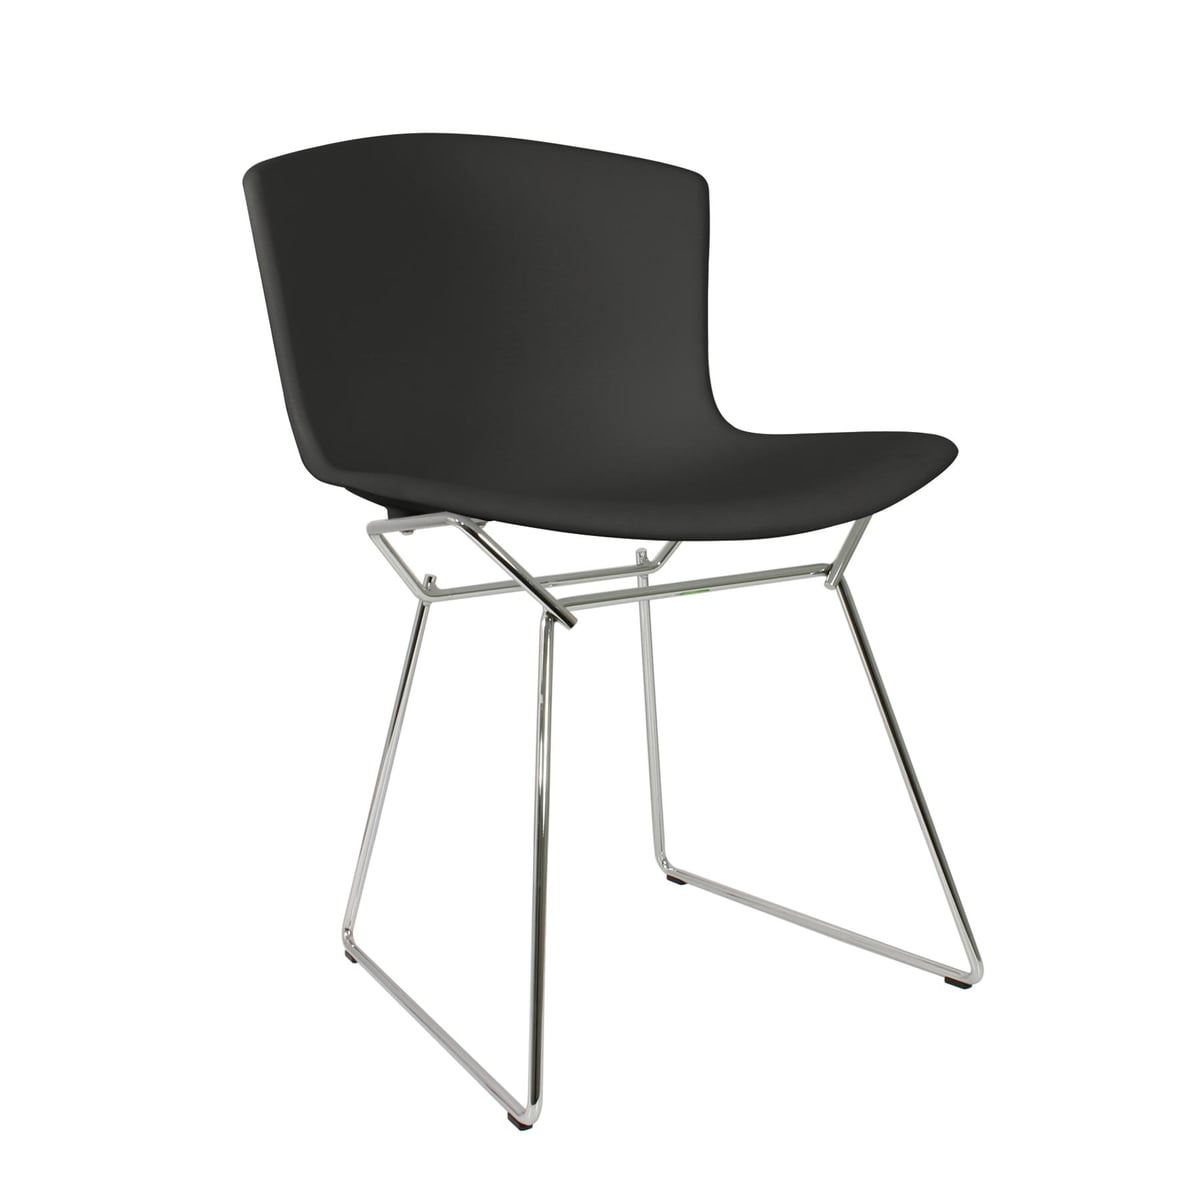 bertoia plastic chair by knoll in the shop. Black Bedroom Furniture Sets. Home Design Ideas